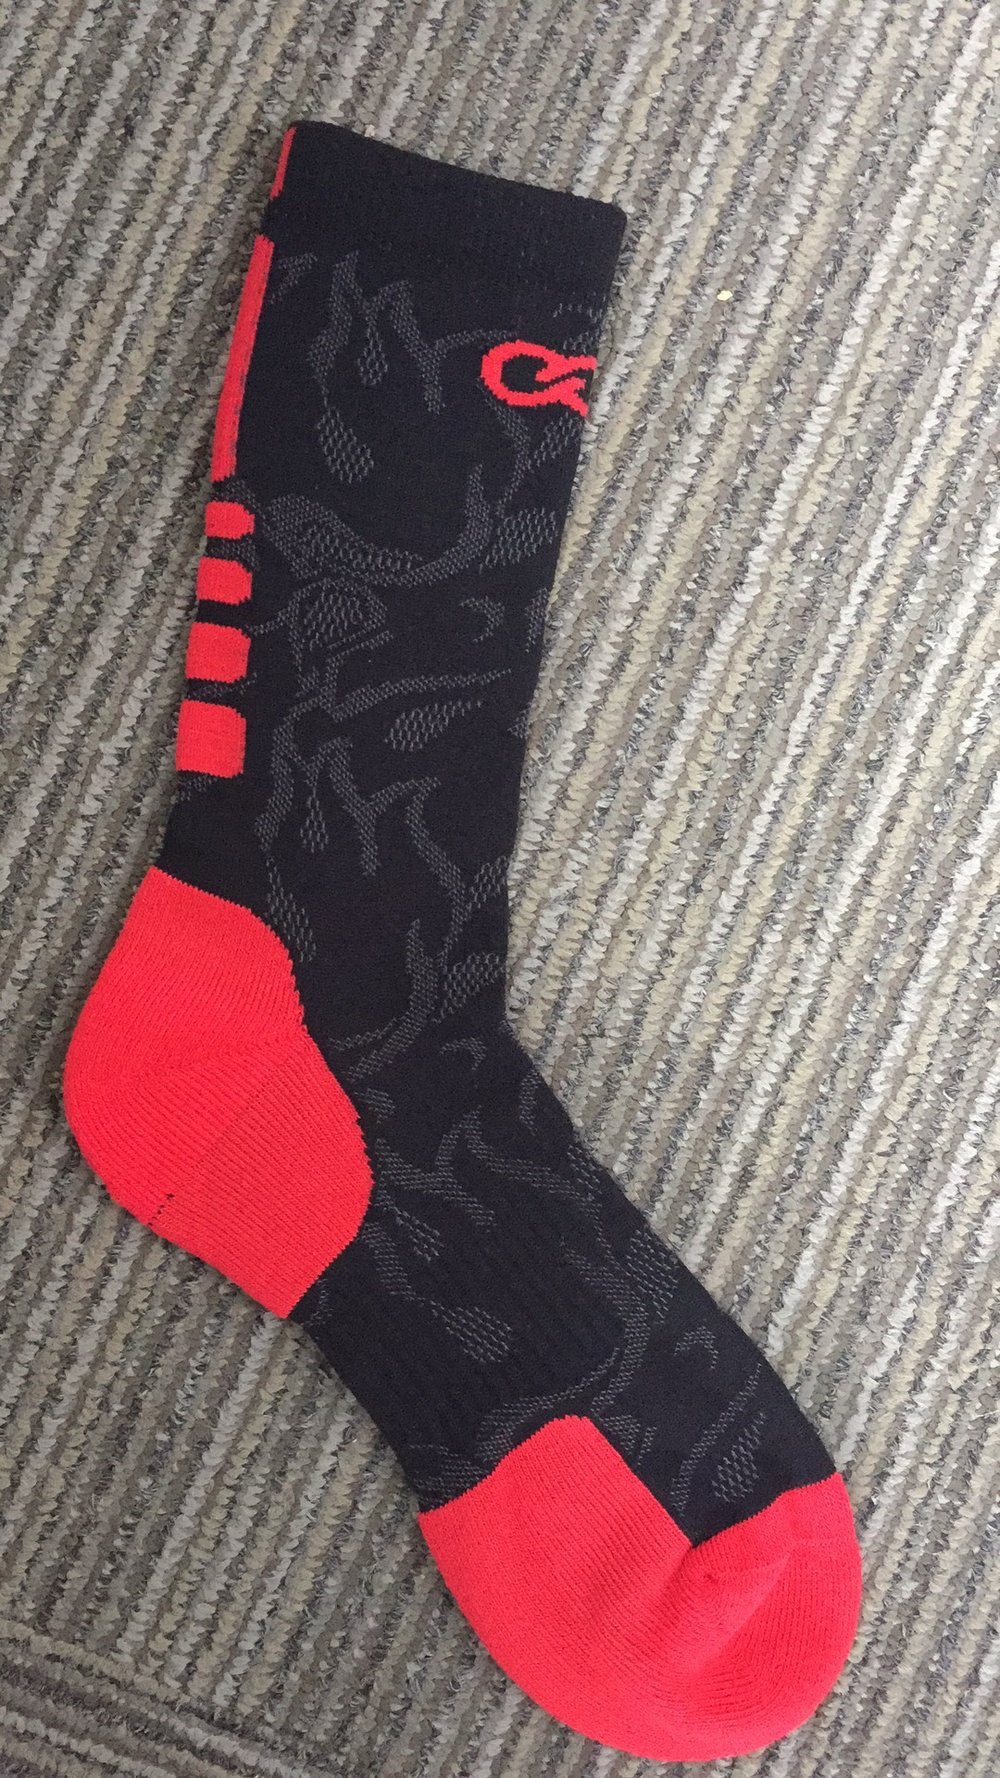 Black and Red Baseball Uniforms Socks